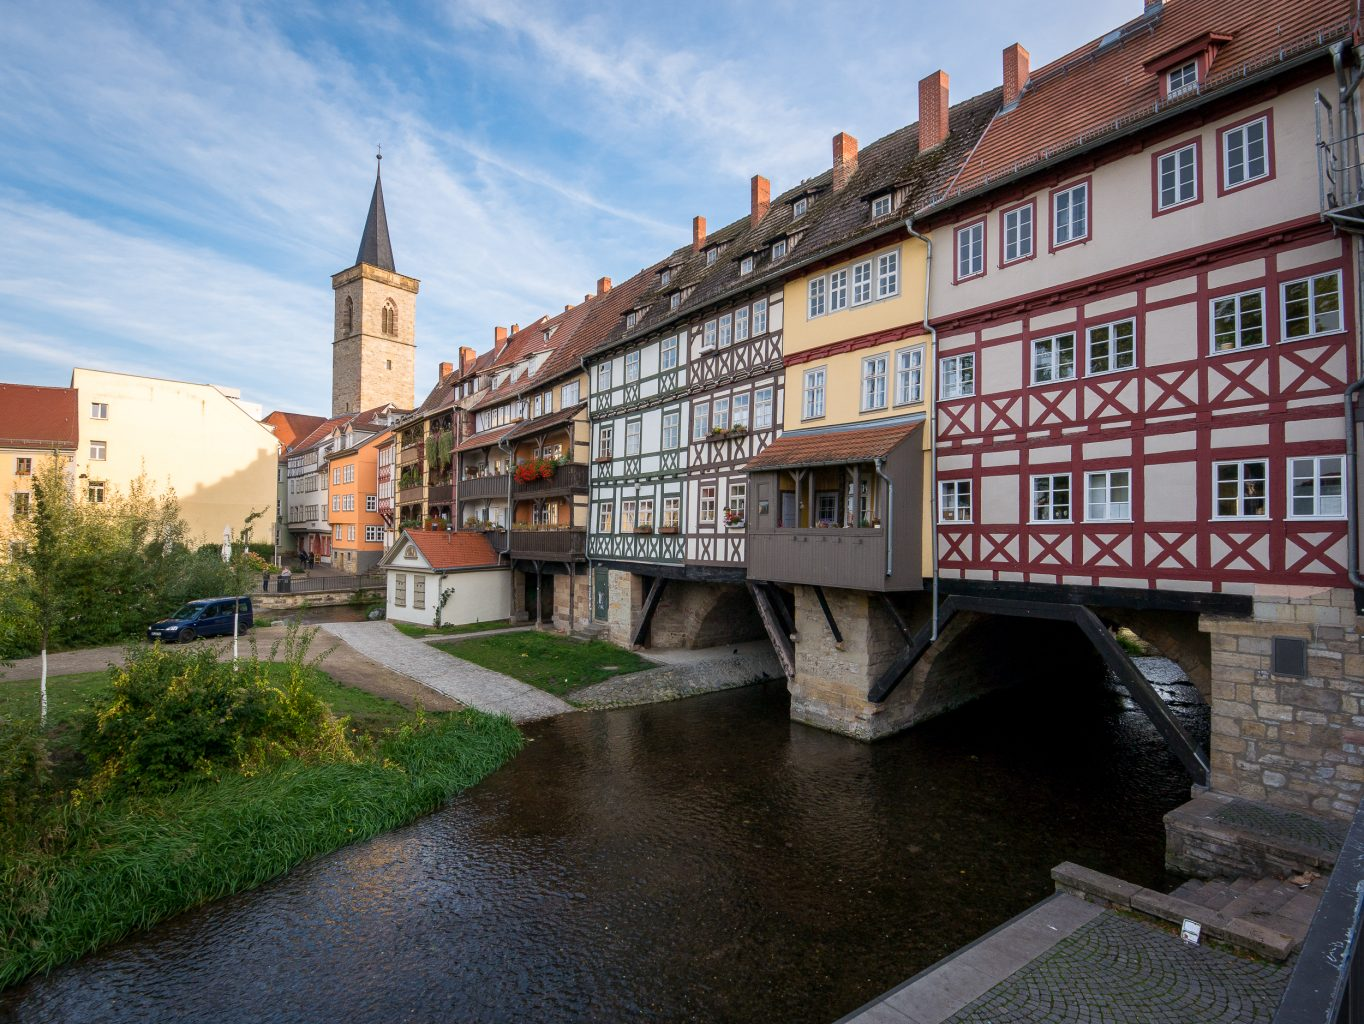 Erfurt's Kramerbrucke (Merchant's Bridge)